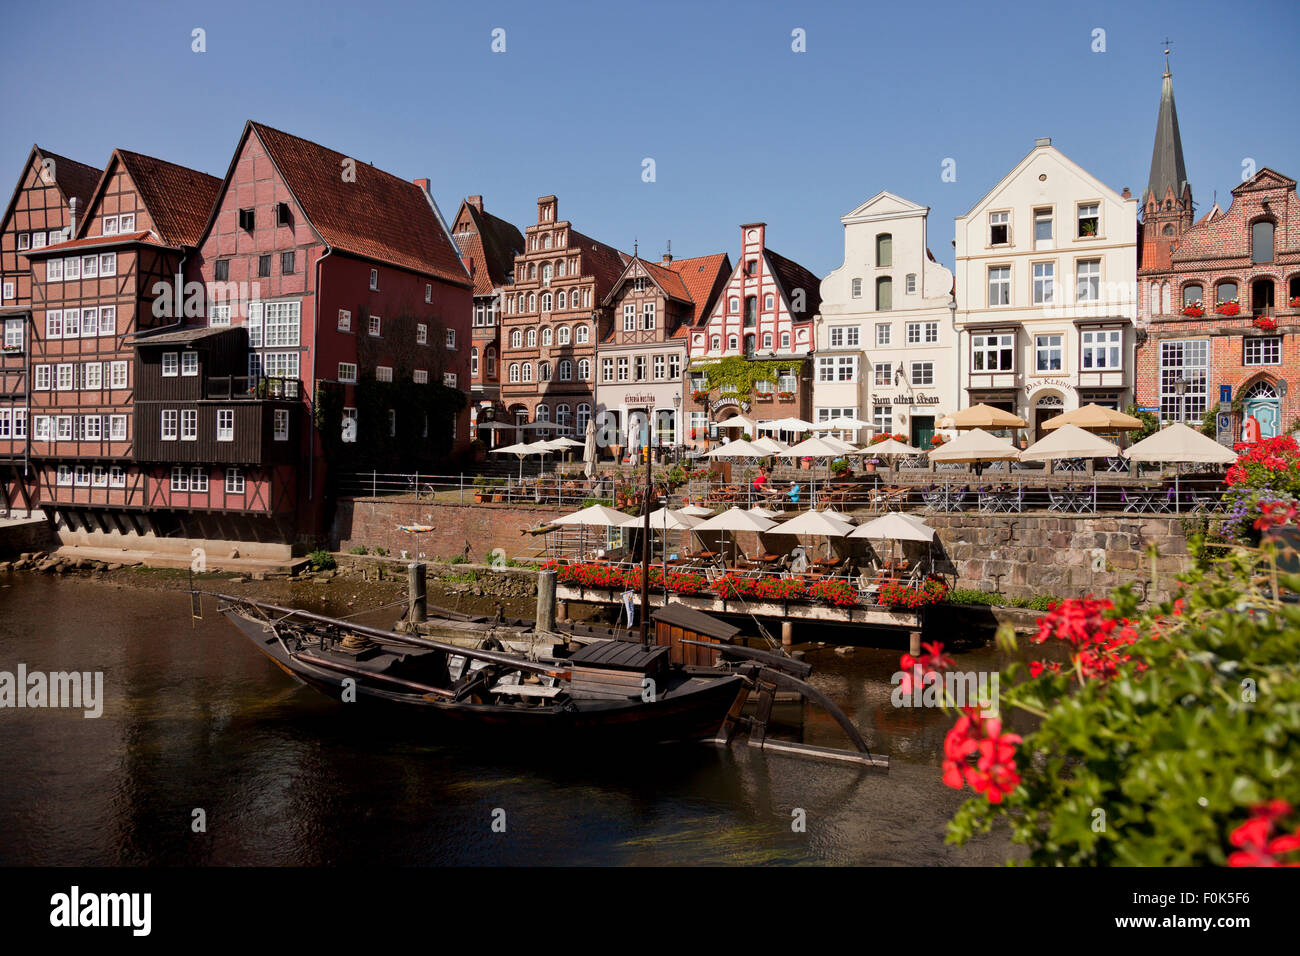 Stint Market and  Lüneburg Old Harbour, Hanseatic Town of Lüneburg, Lower Saxony, Germany - Stock Image